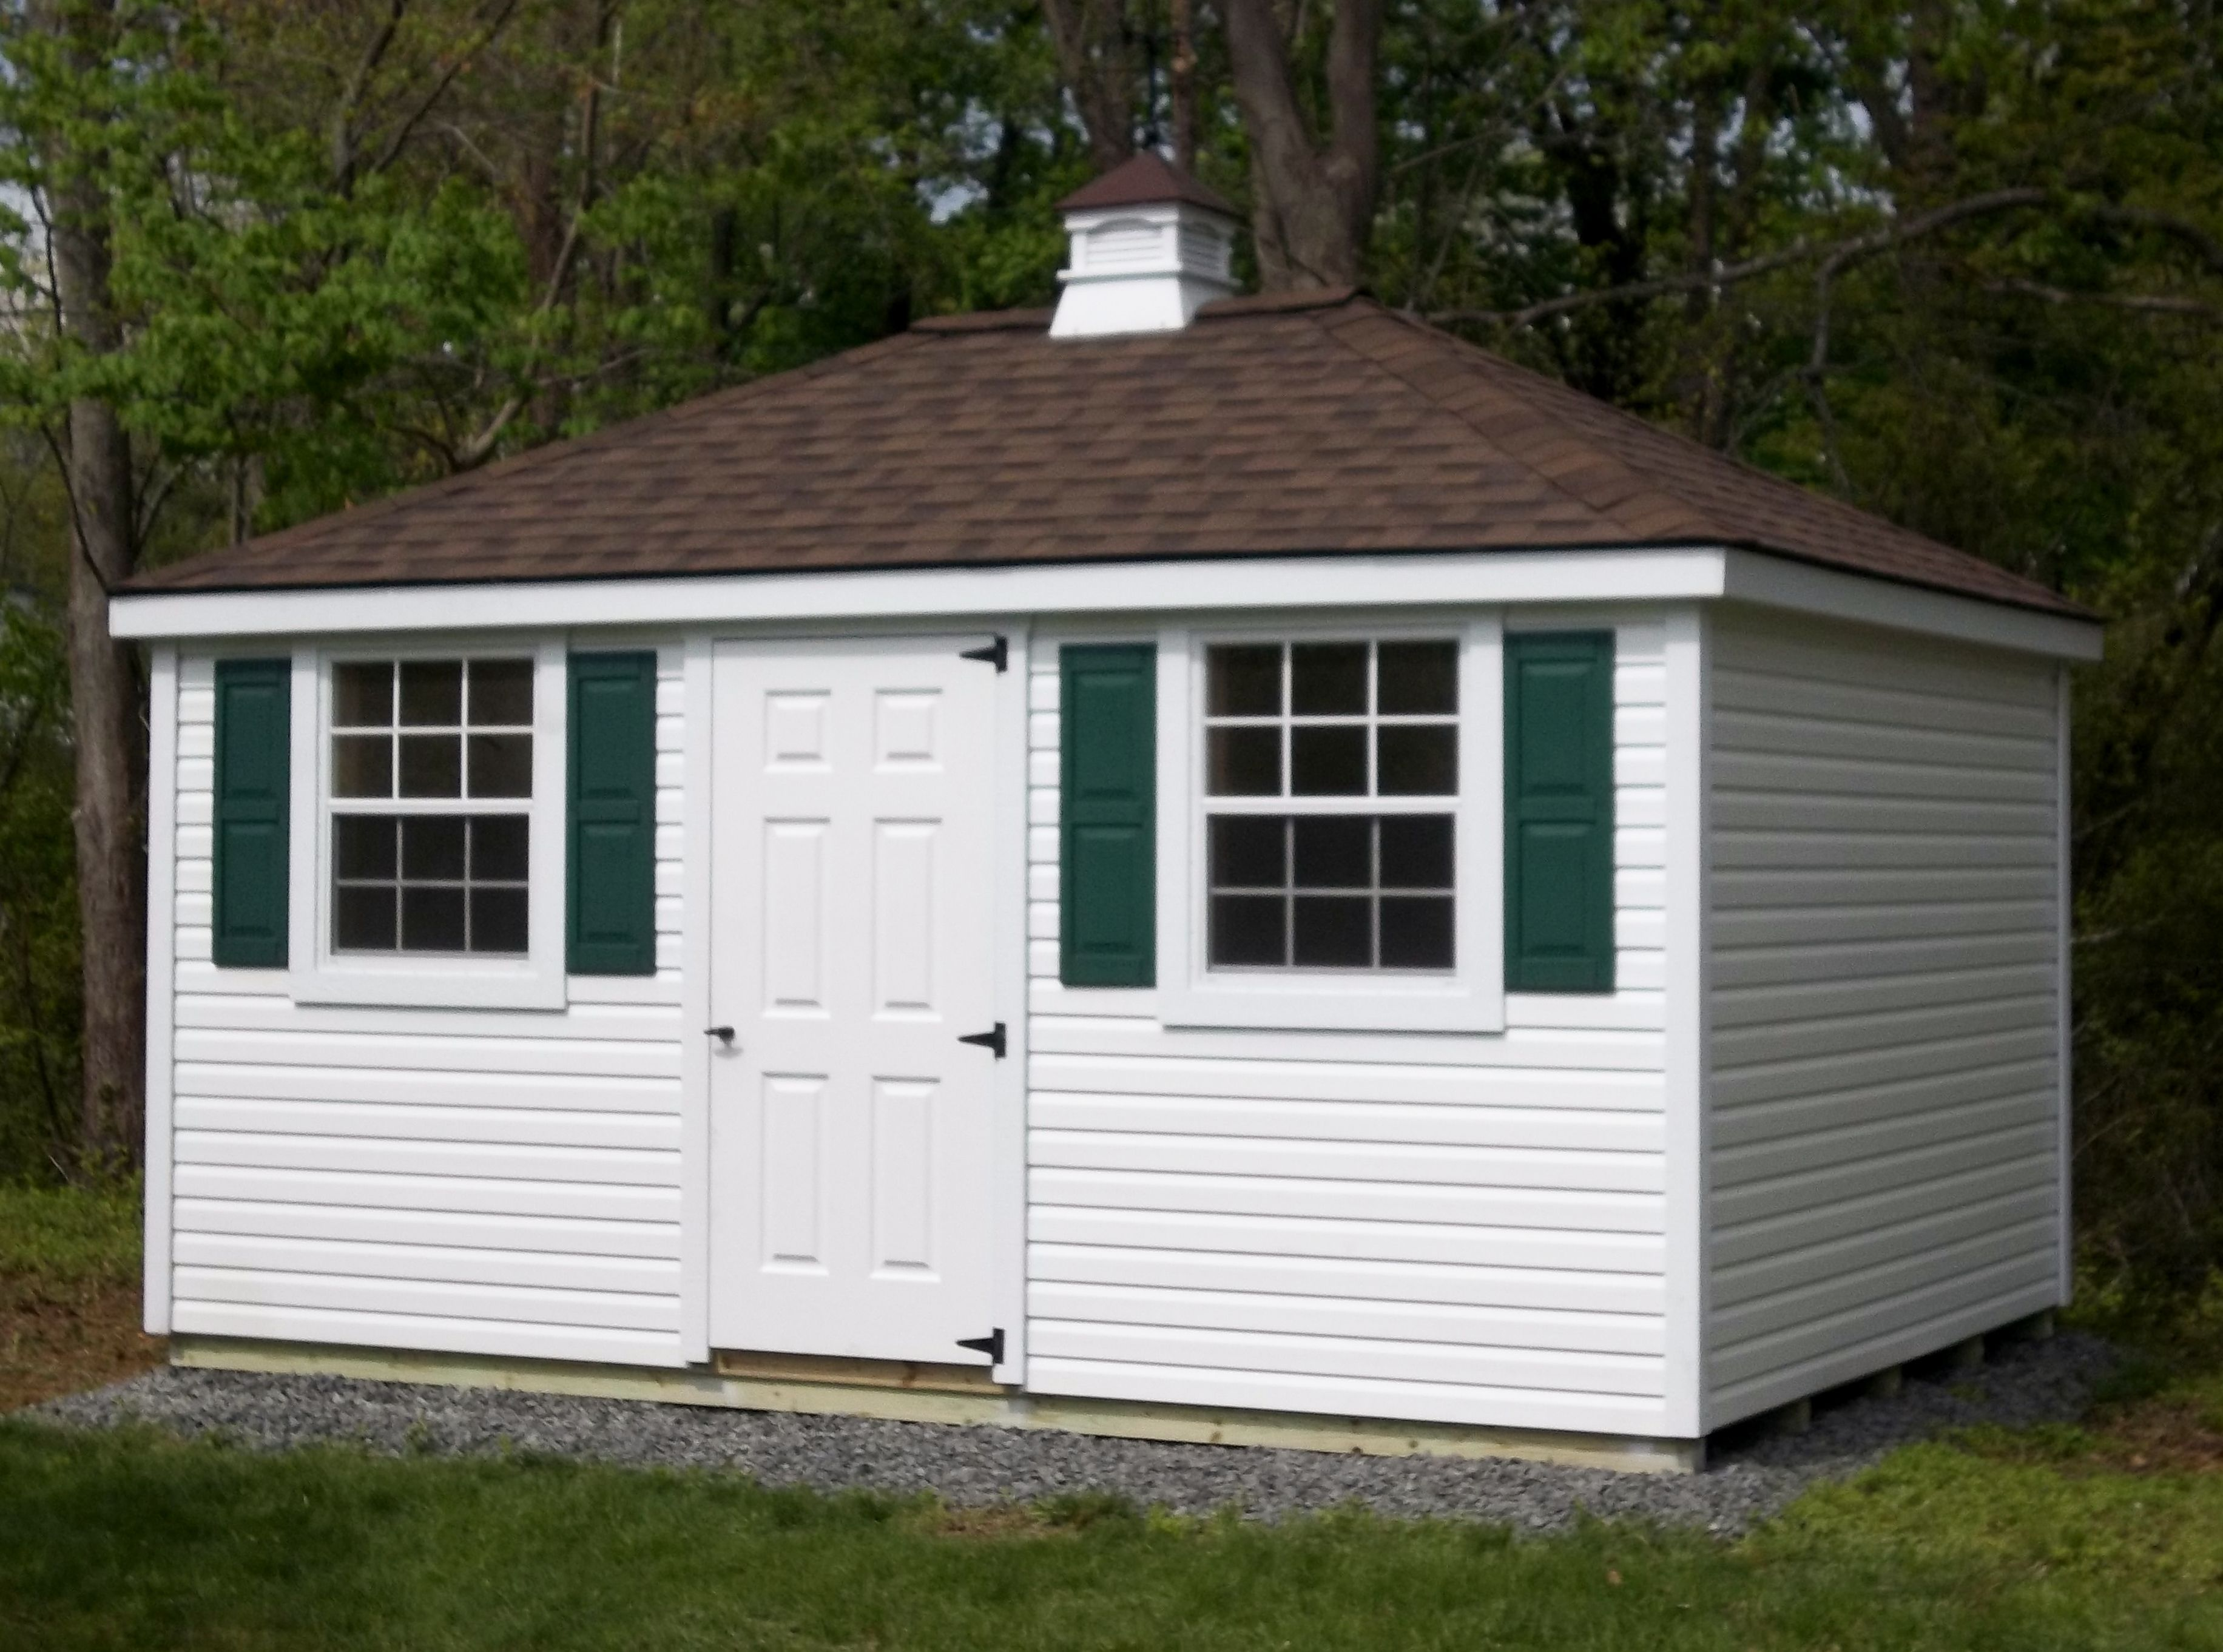 Deluxe with dormer transom windows and cupola - This Cupola Is The Last Touch On This Beautiful Hip Roof Shed